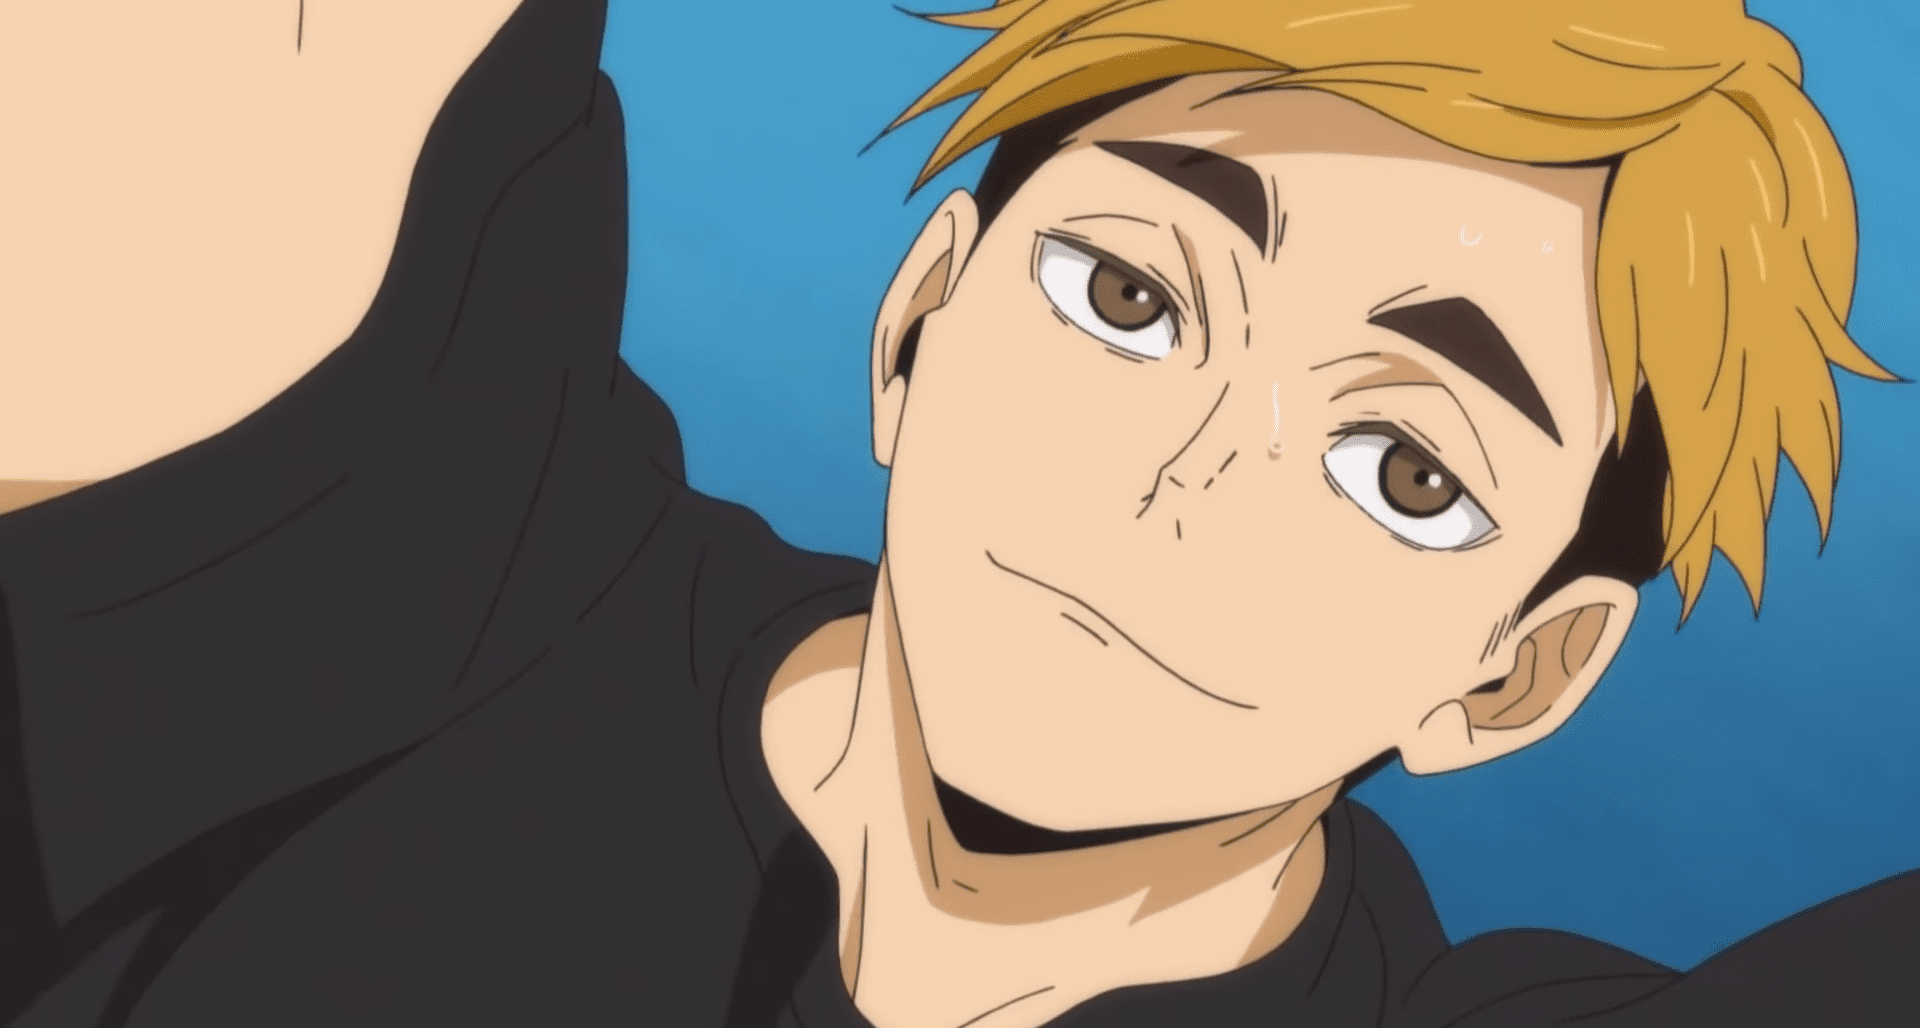 Haikyuu!! season 4 cour 2